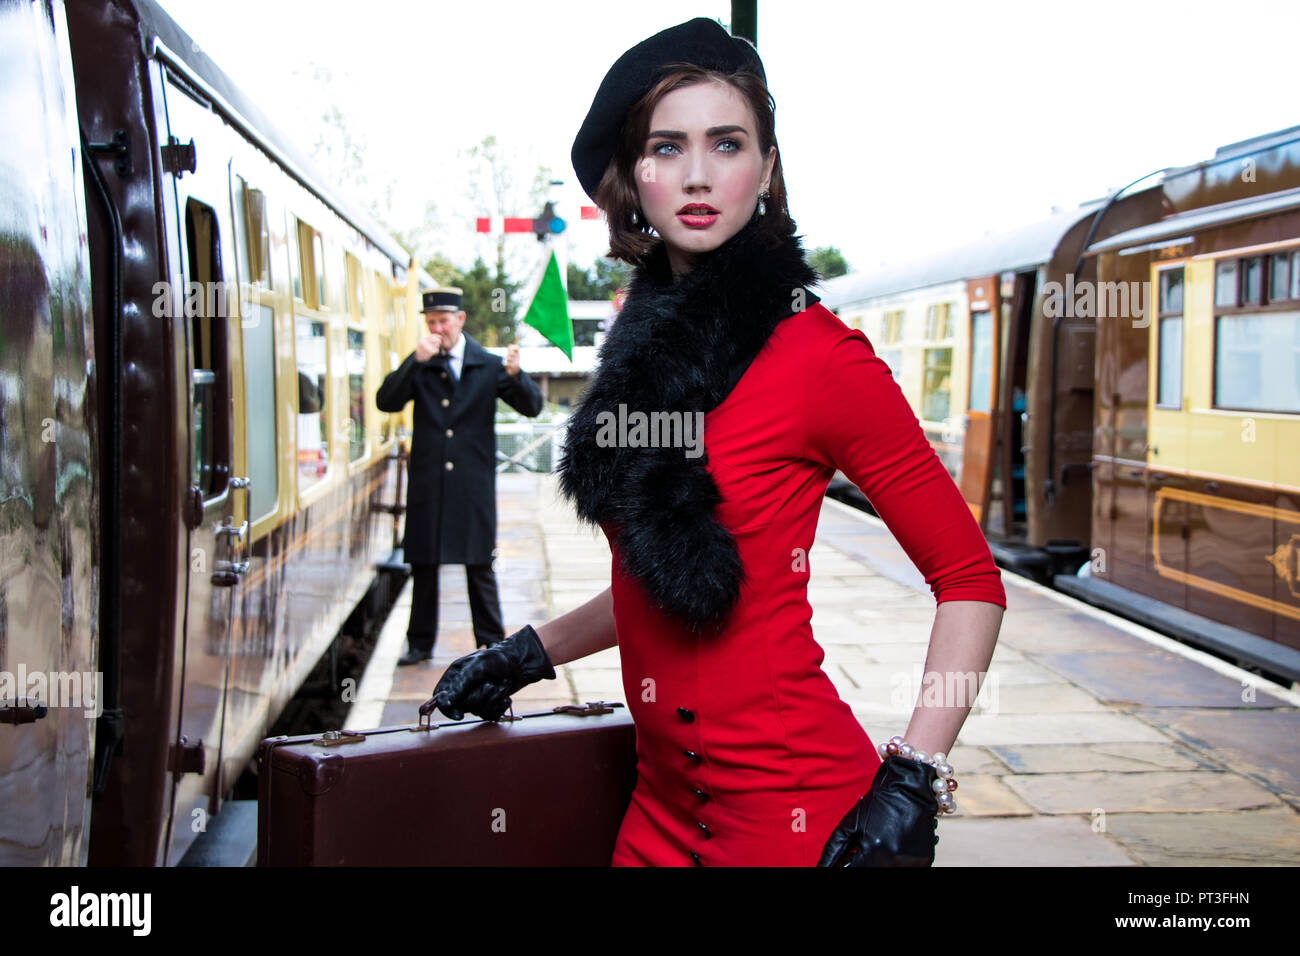 317376179700f Vintage beautiful female wearing red dress and black beret carrying  suitcases as she boards train at